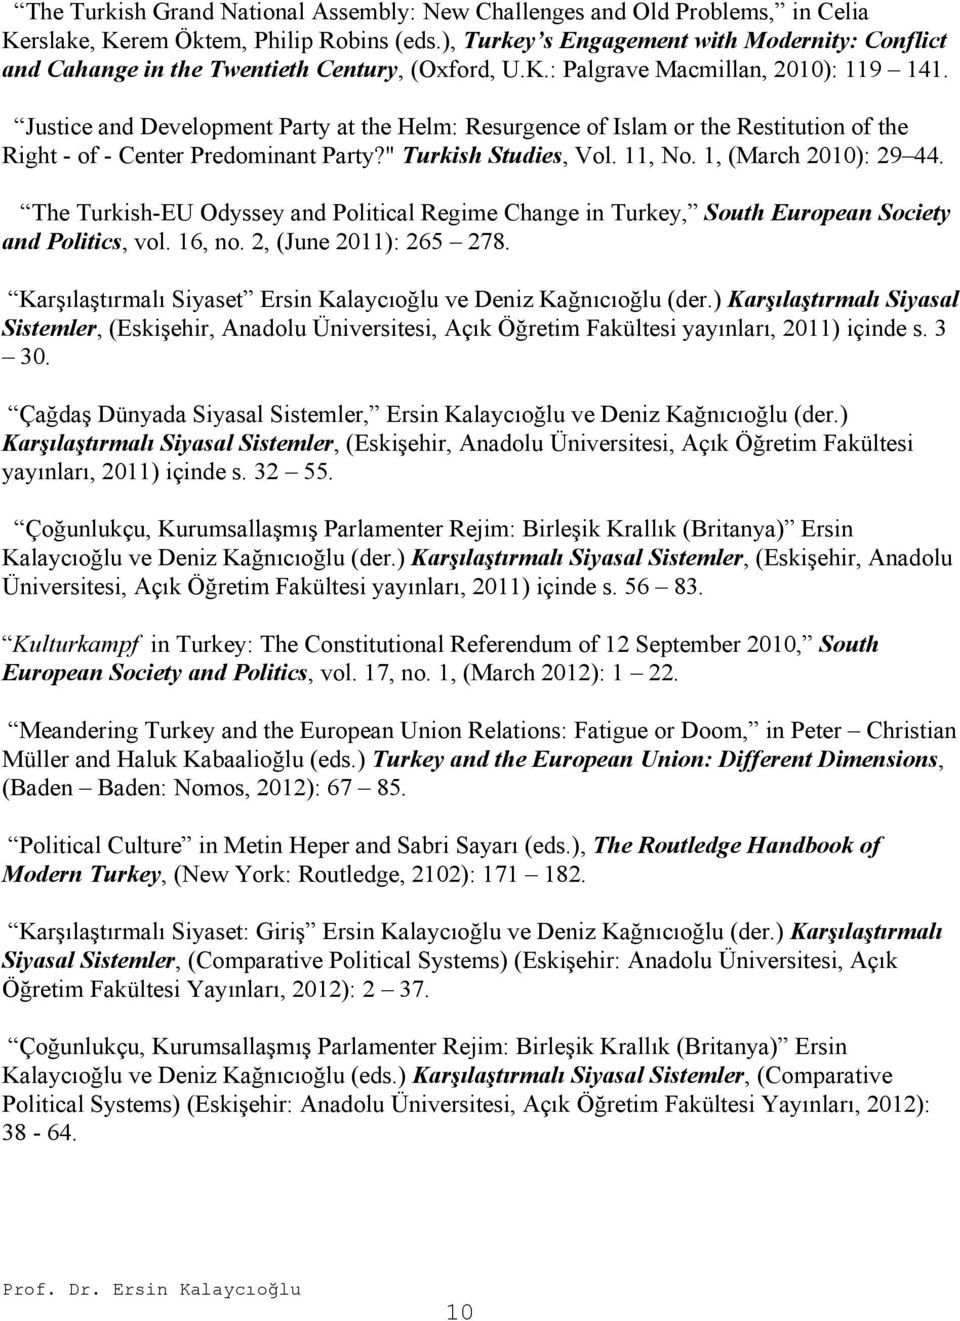 "Justice and Development Party at the Helm: Resurgence of Islam or the Restitution of the Right - of - Center Predominant Party?"" Turkish Studies, Vol. 11, No. 1, (March 2010): 29 44."